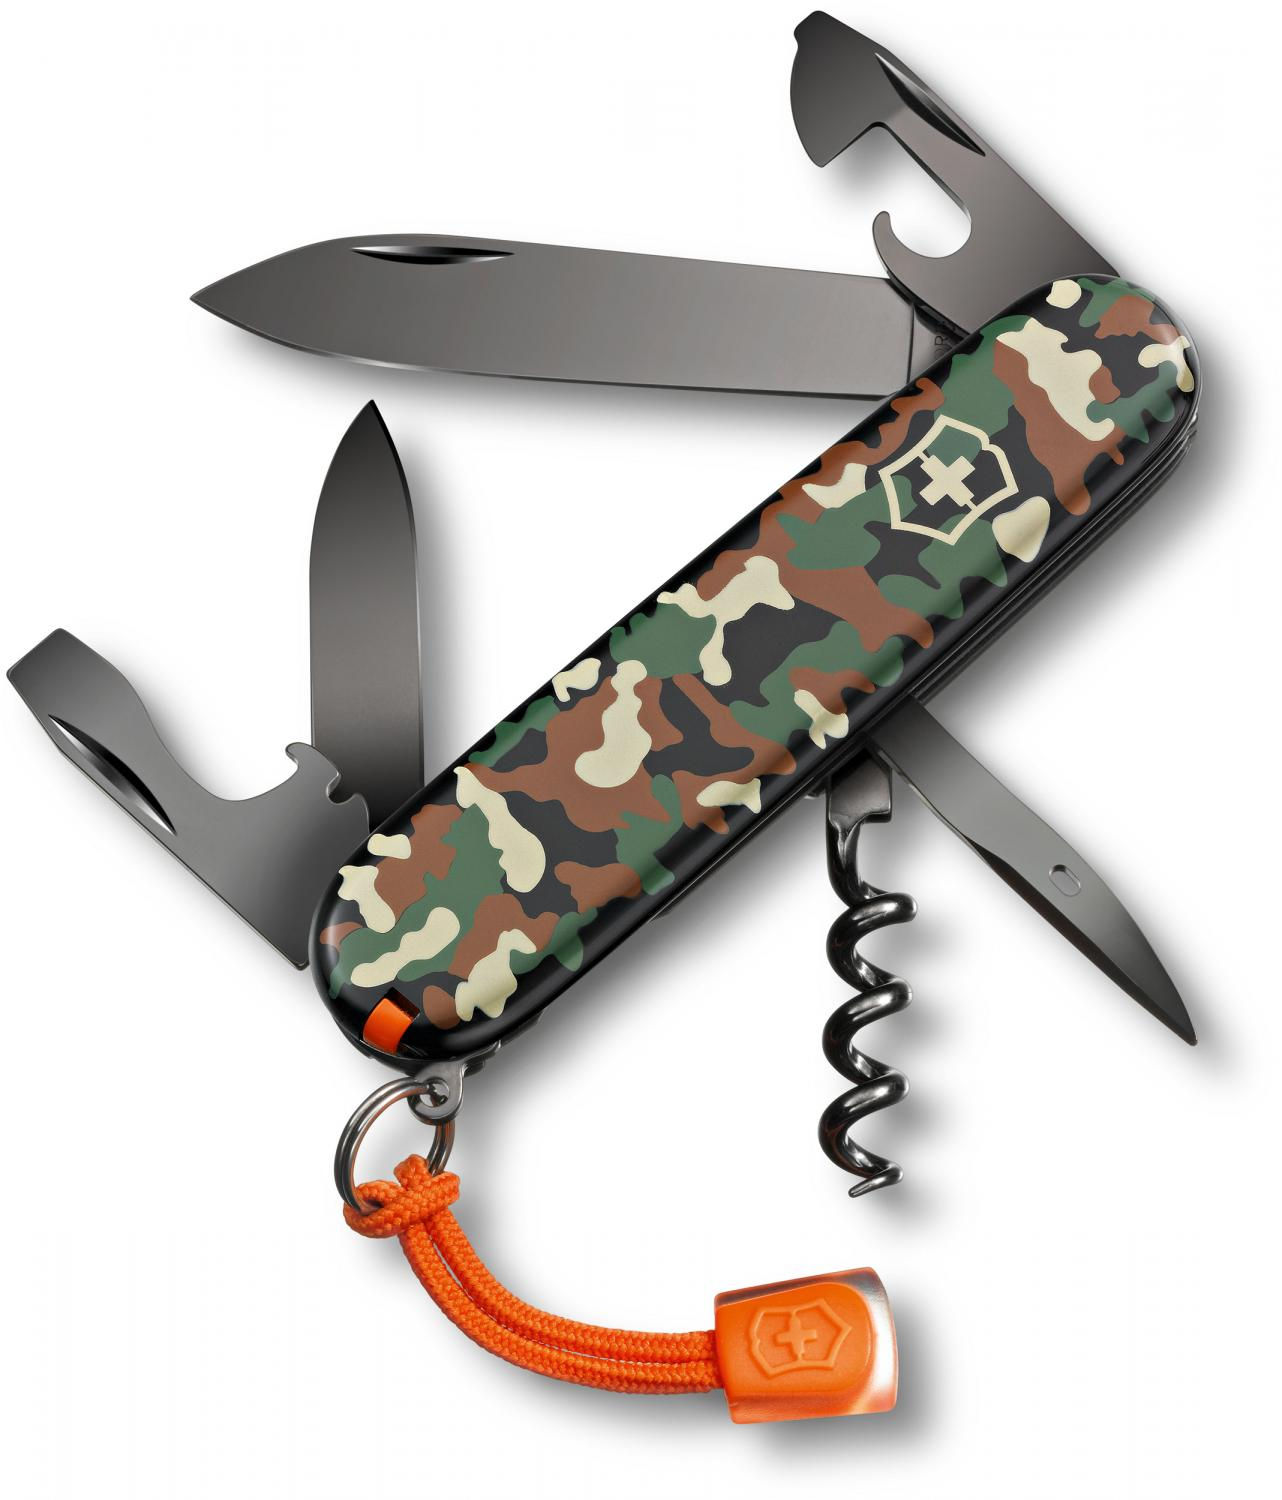 Victorinox Swiss Army Black Ice Spartan Multi-Tool, 3-1/2 inch Camouflage Handles, Limited Edition (1.3603.94L12)